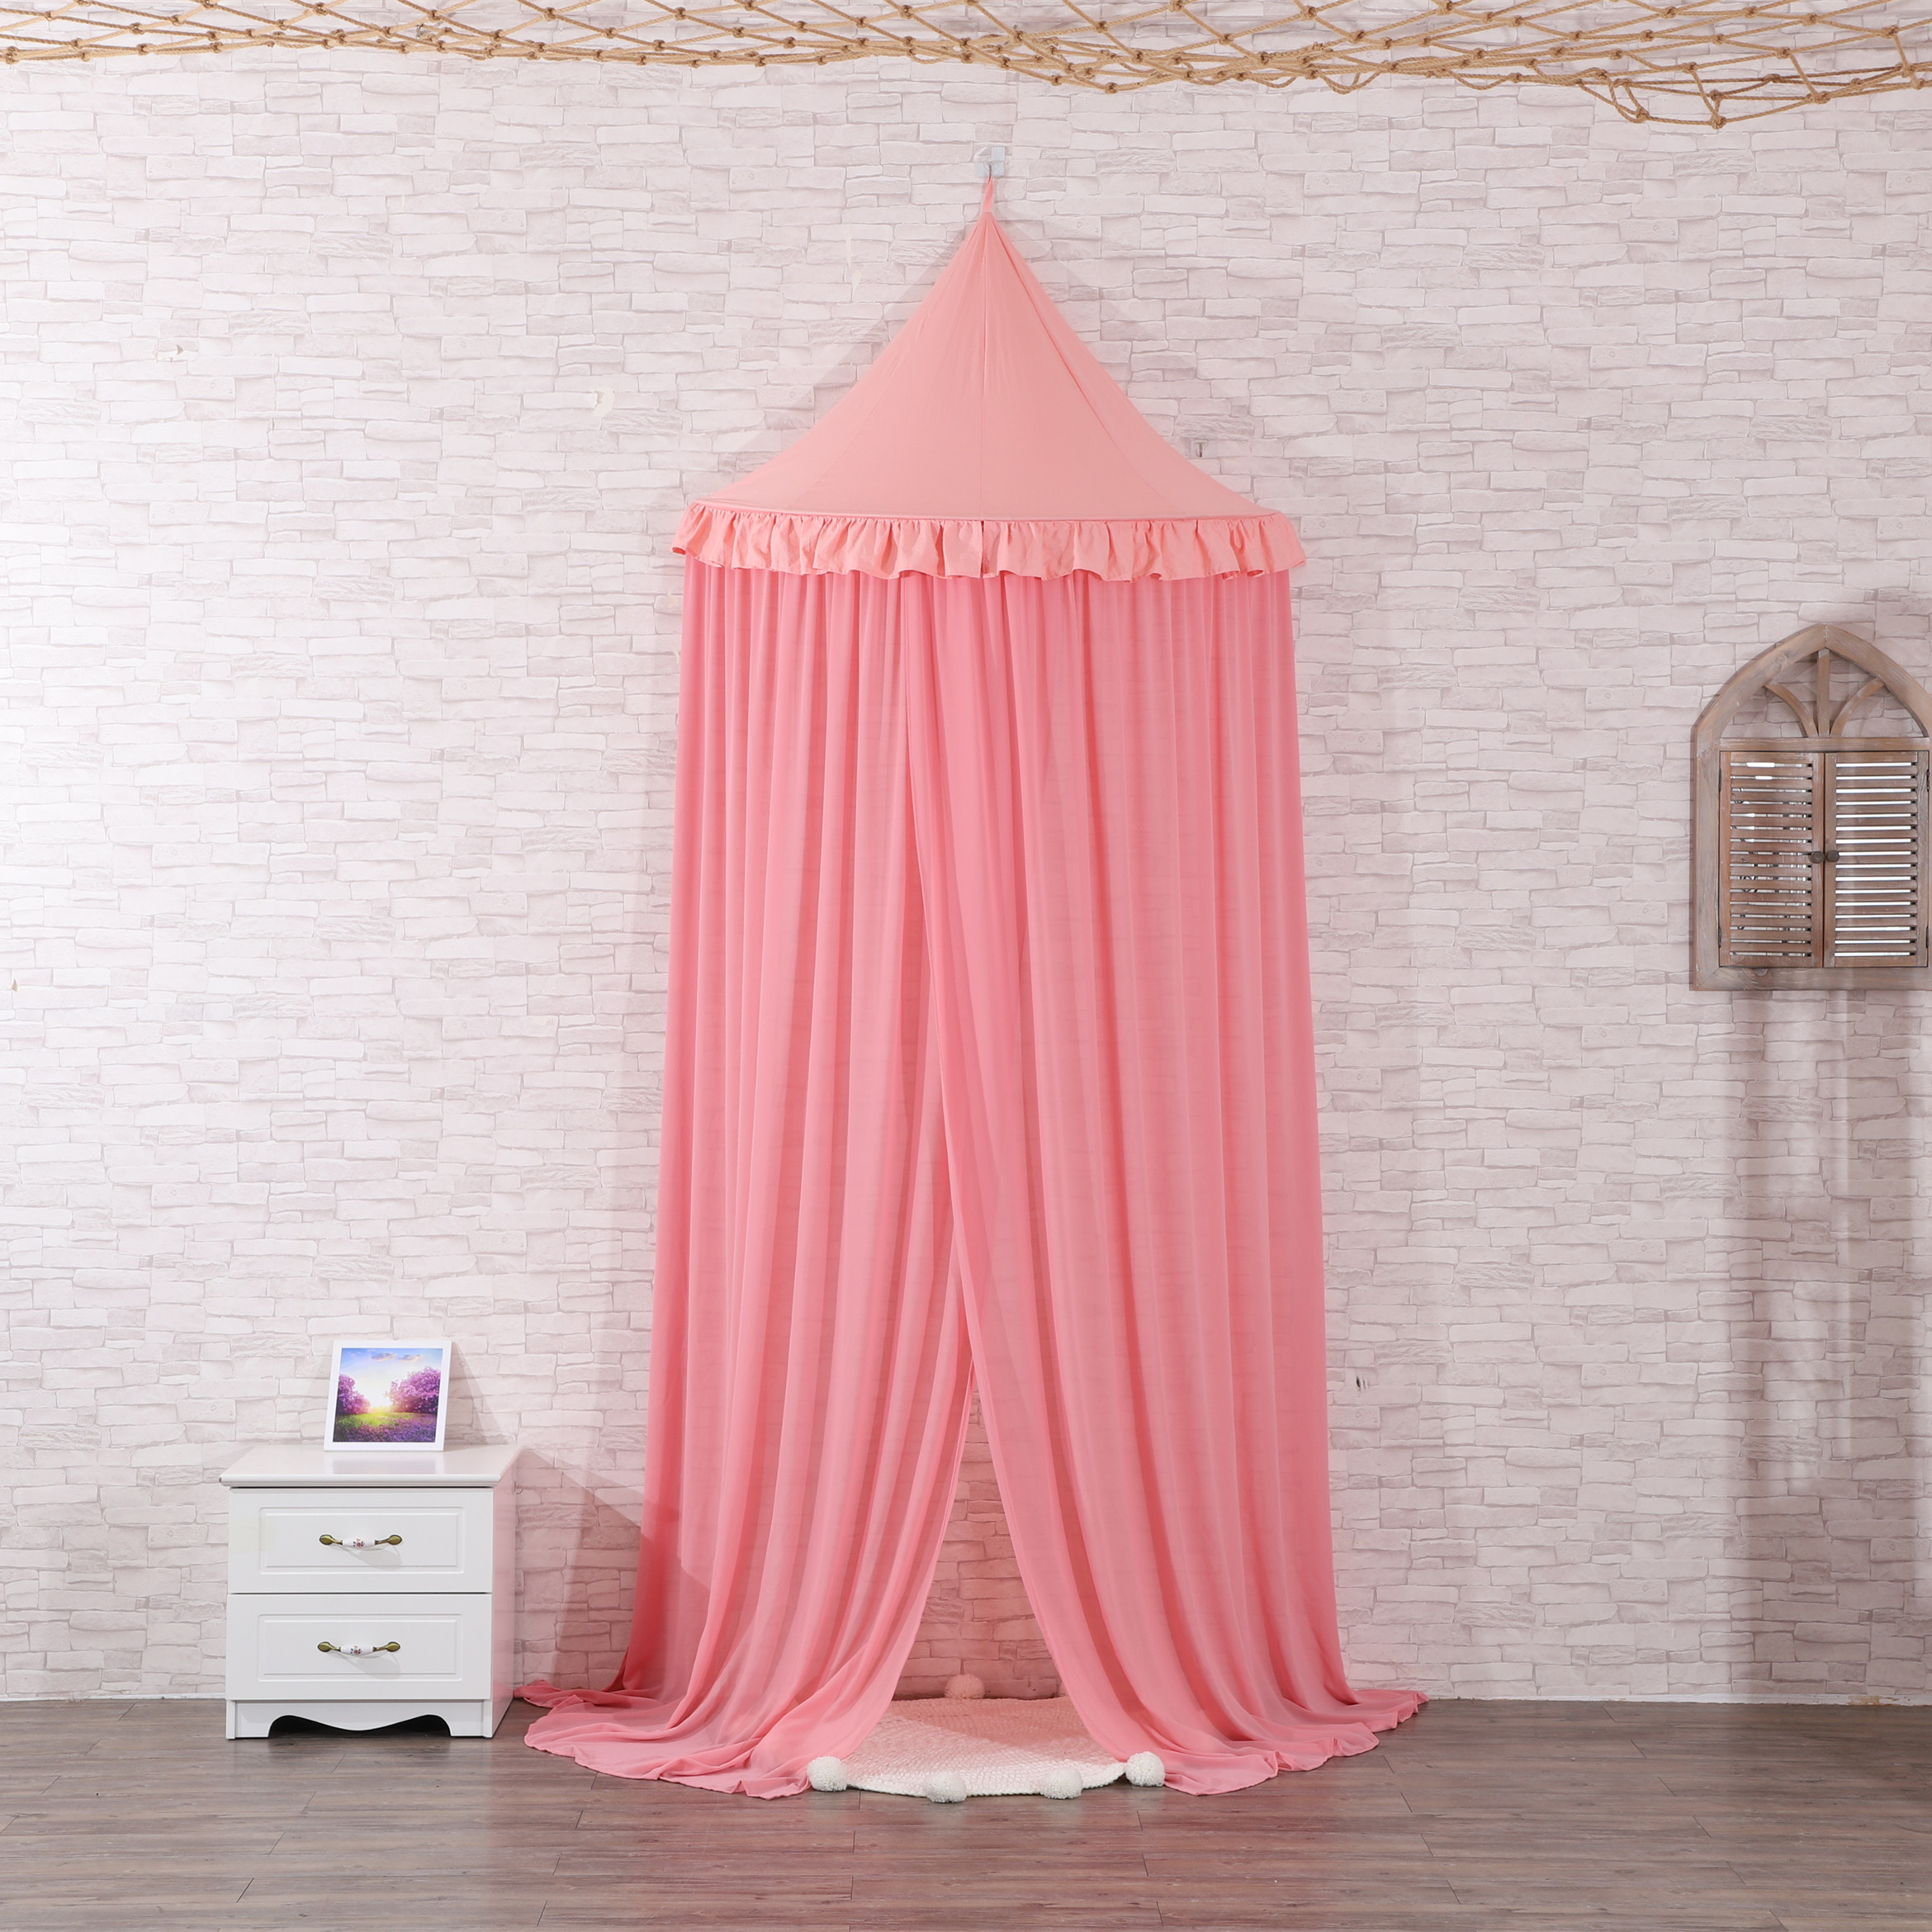 New Design Princess Mosquito Nets half round Girls Bedside Bed Canopy